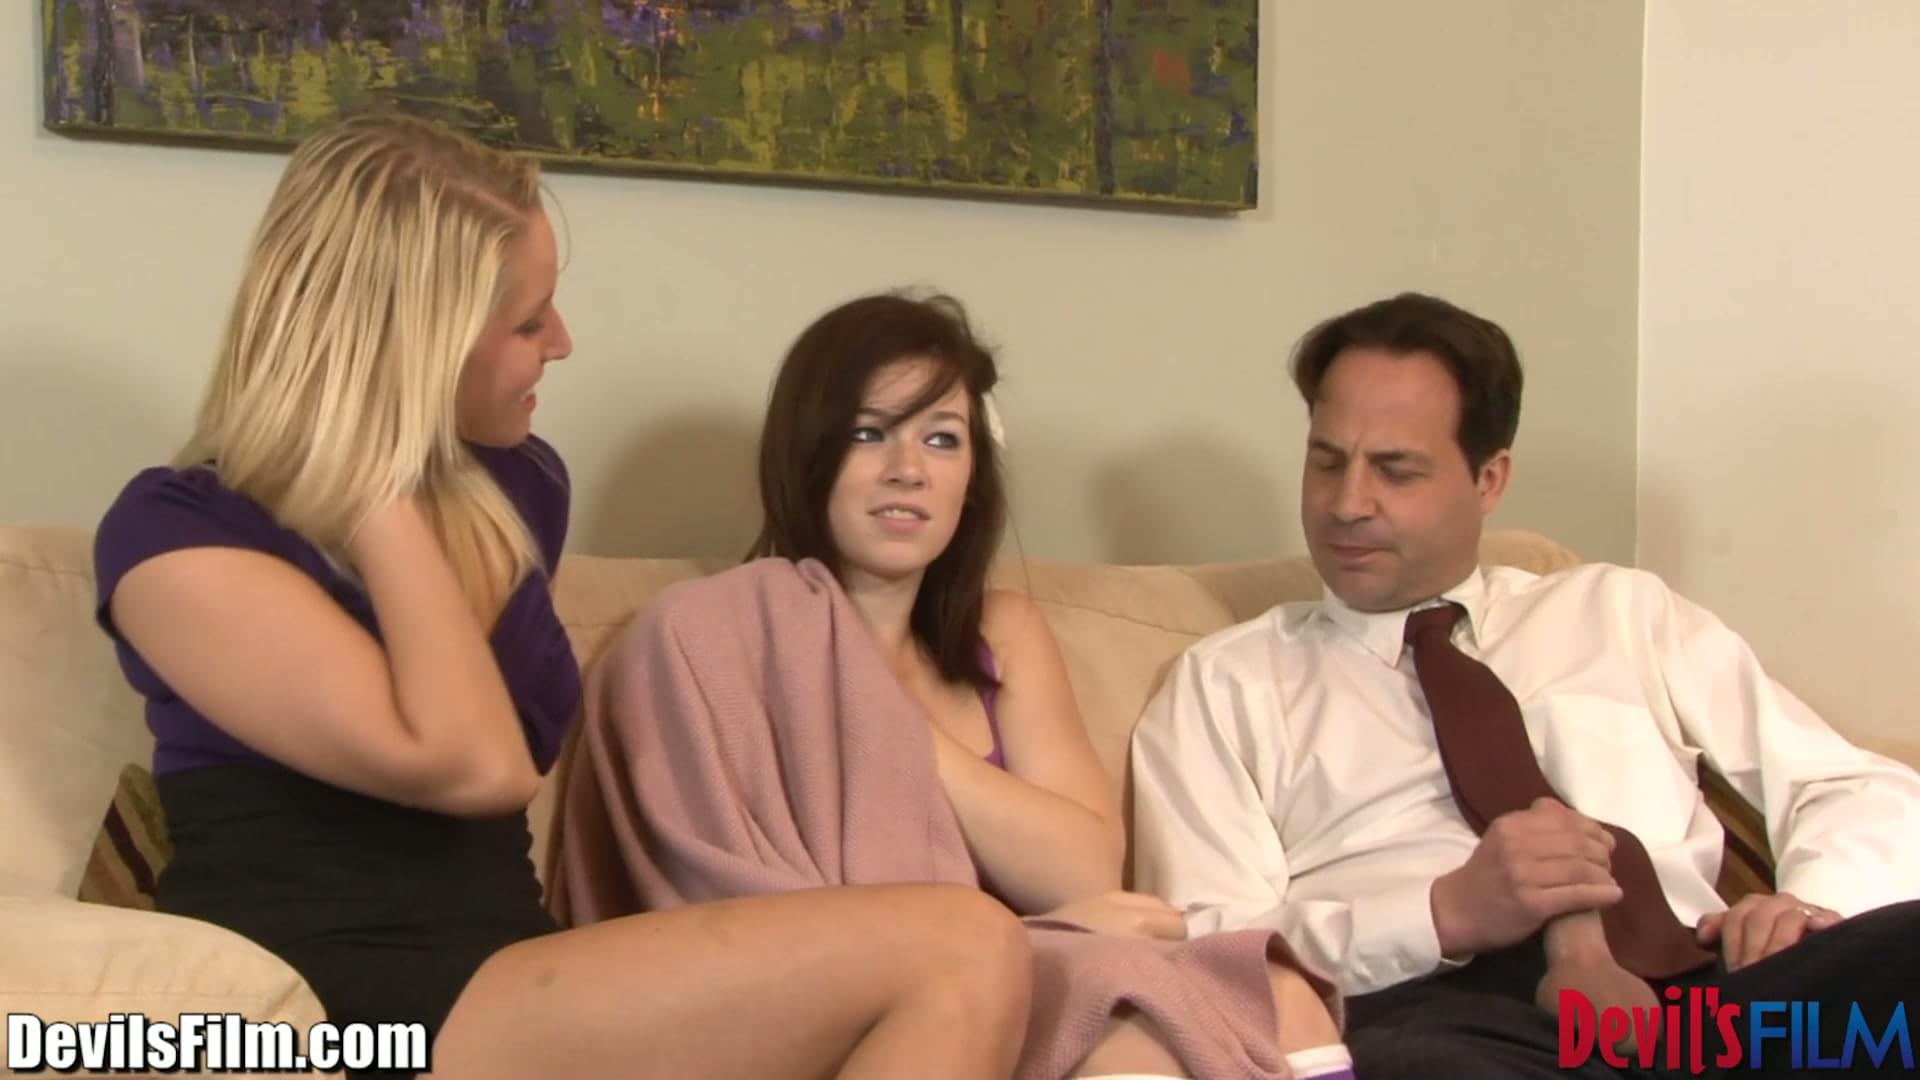 Lesbian Threesome Babysitter And Wife